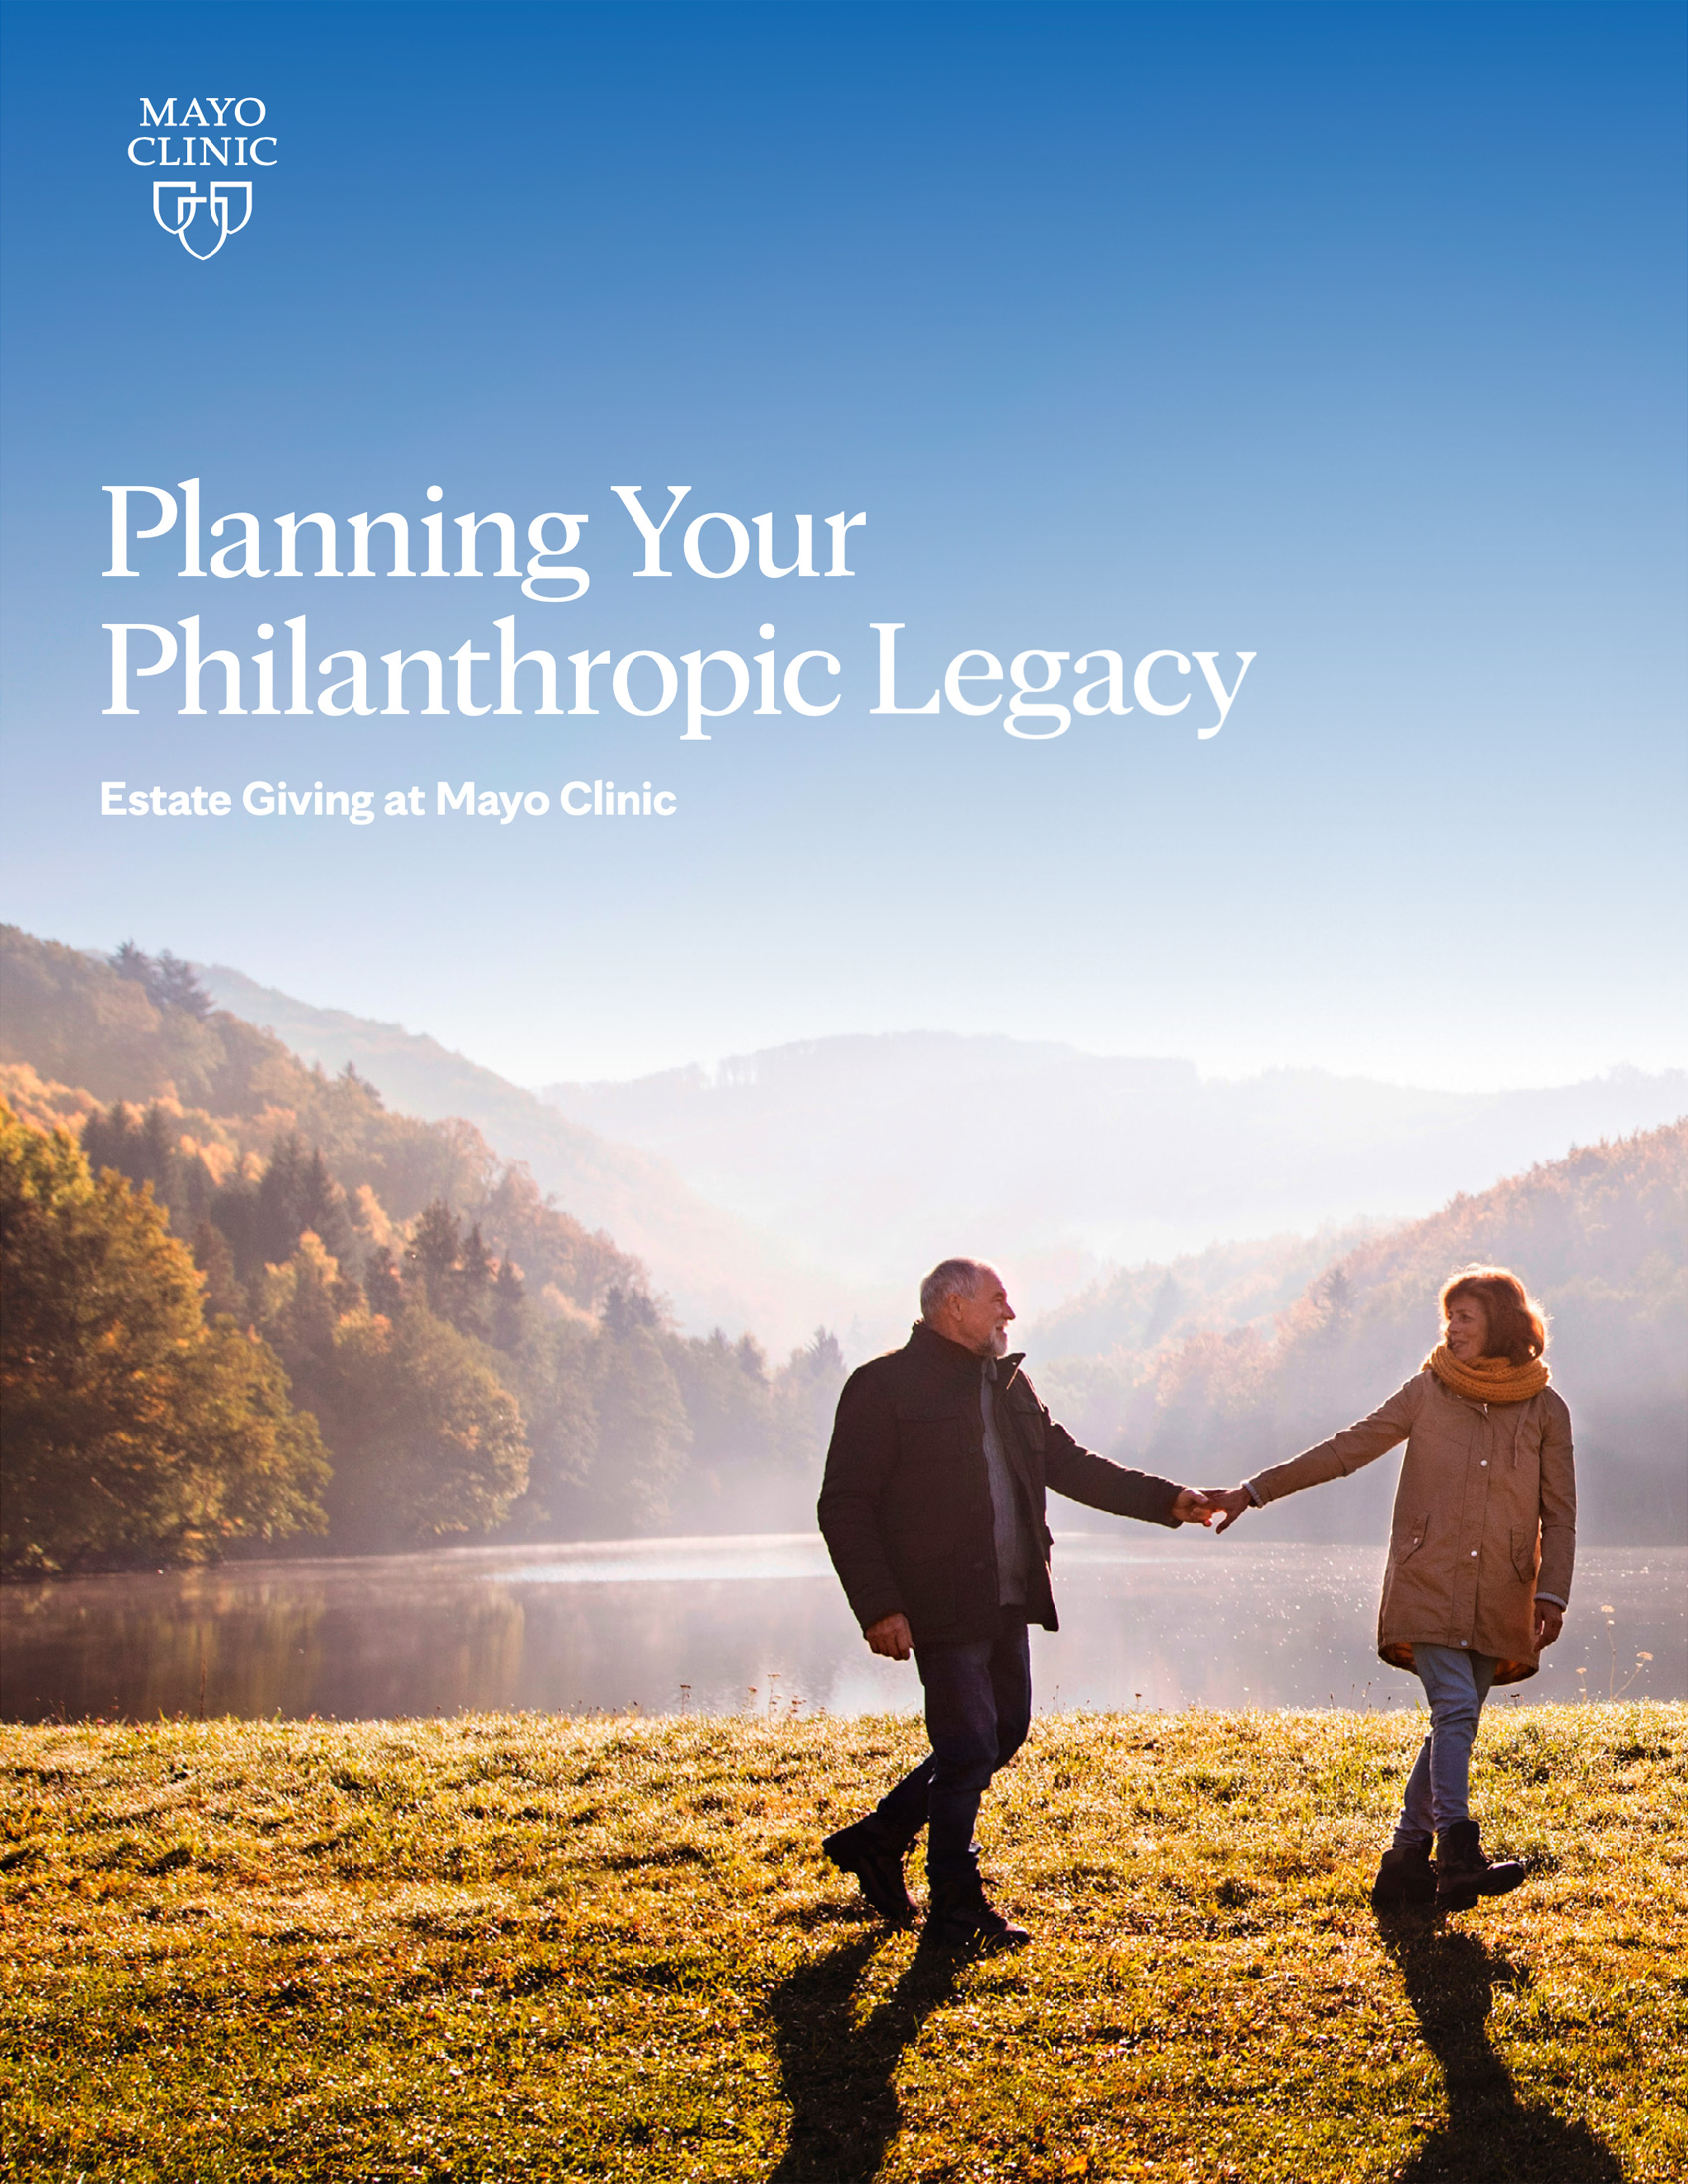 Planning Your Philanthropic Legacy